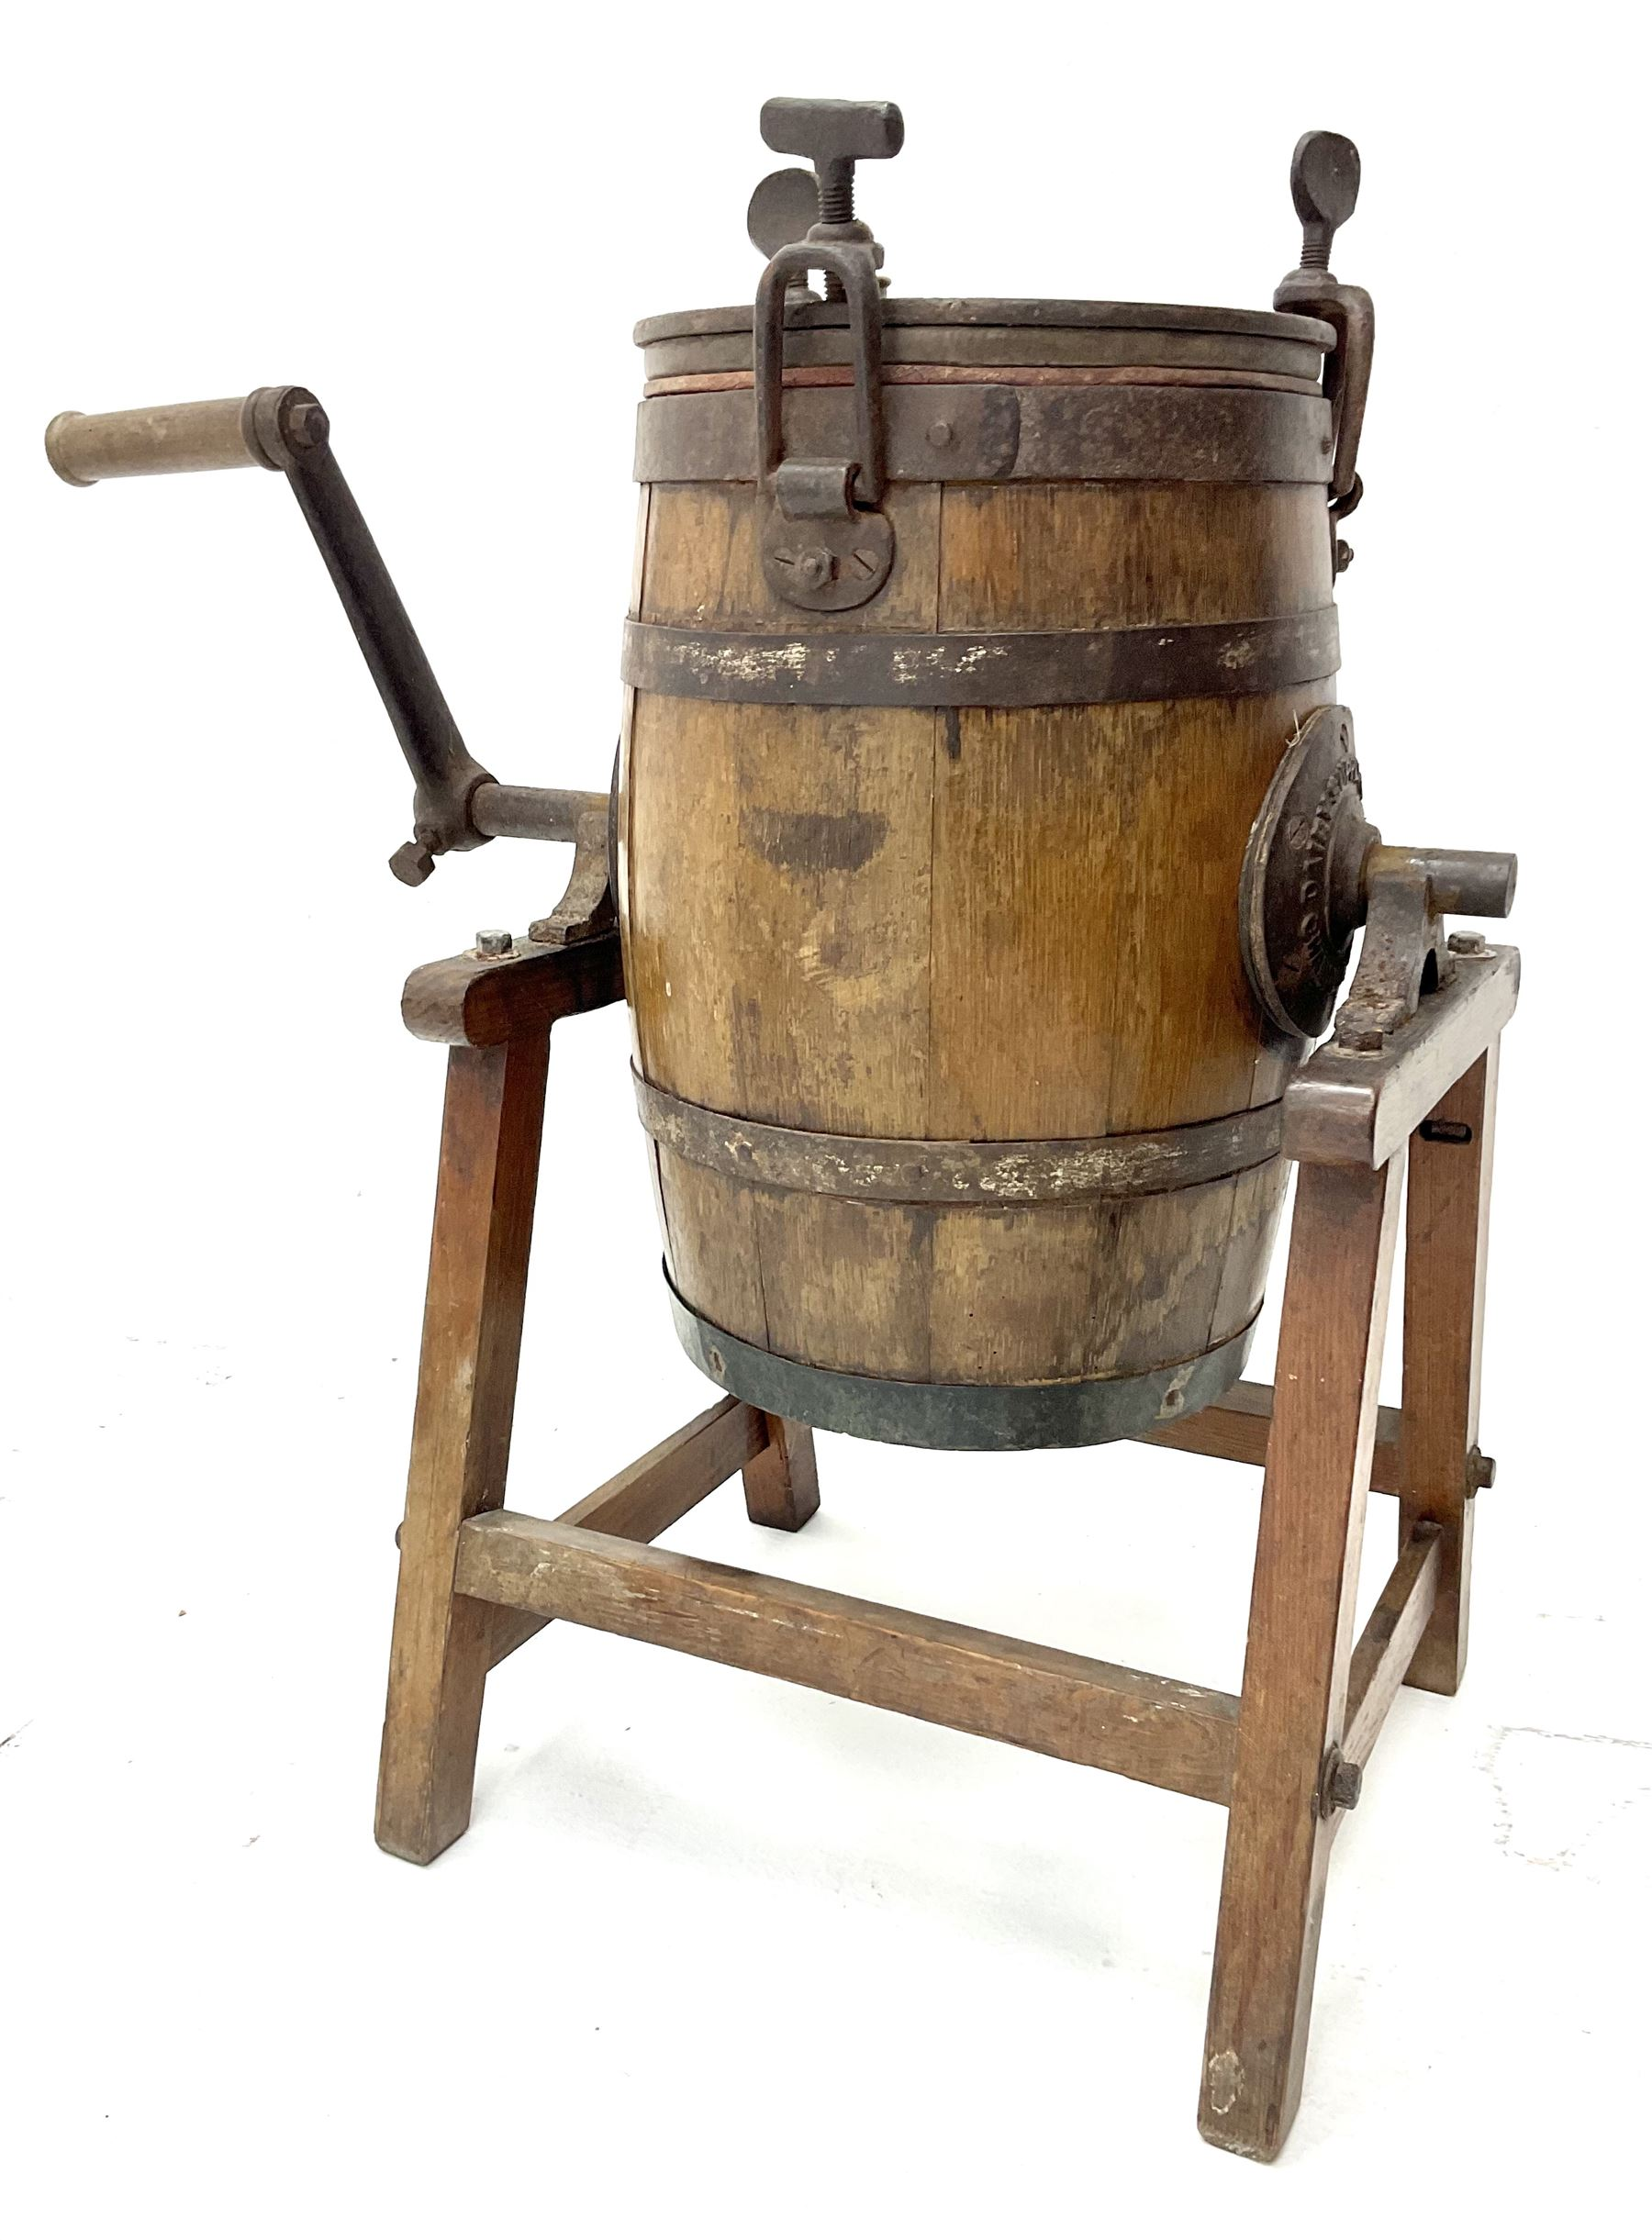 Victorian coopered oak table top butter churn on stand - Image 2 of 4